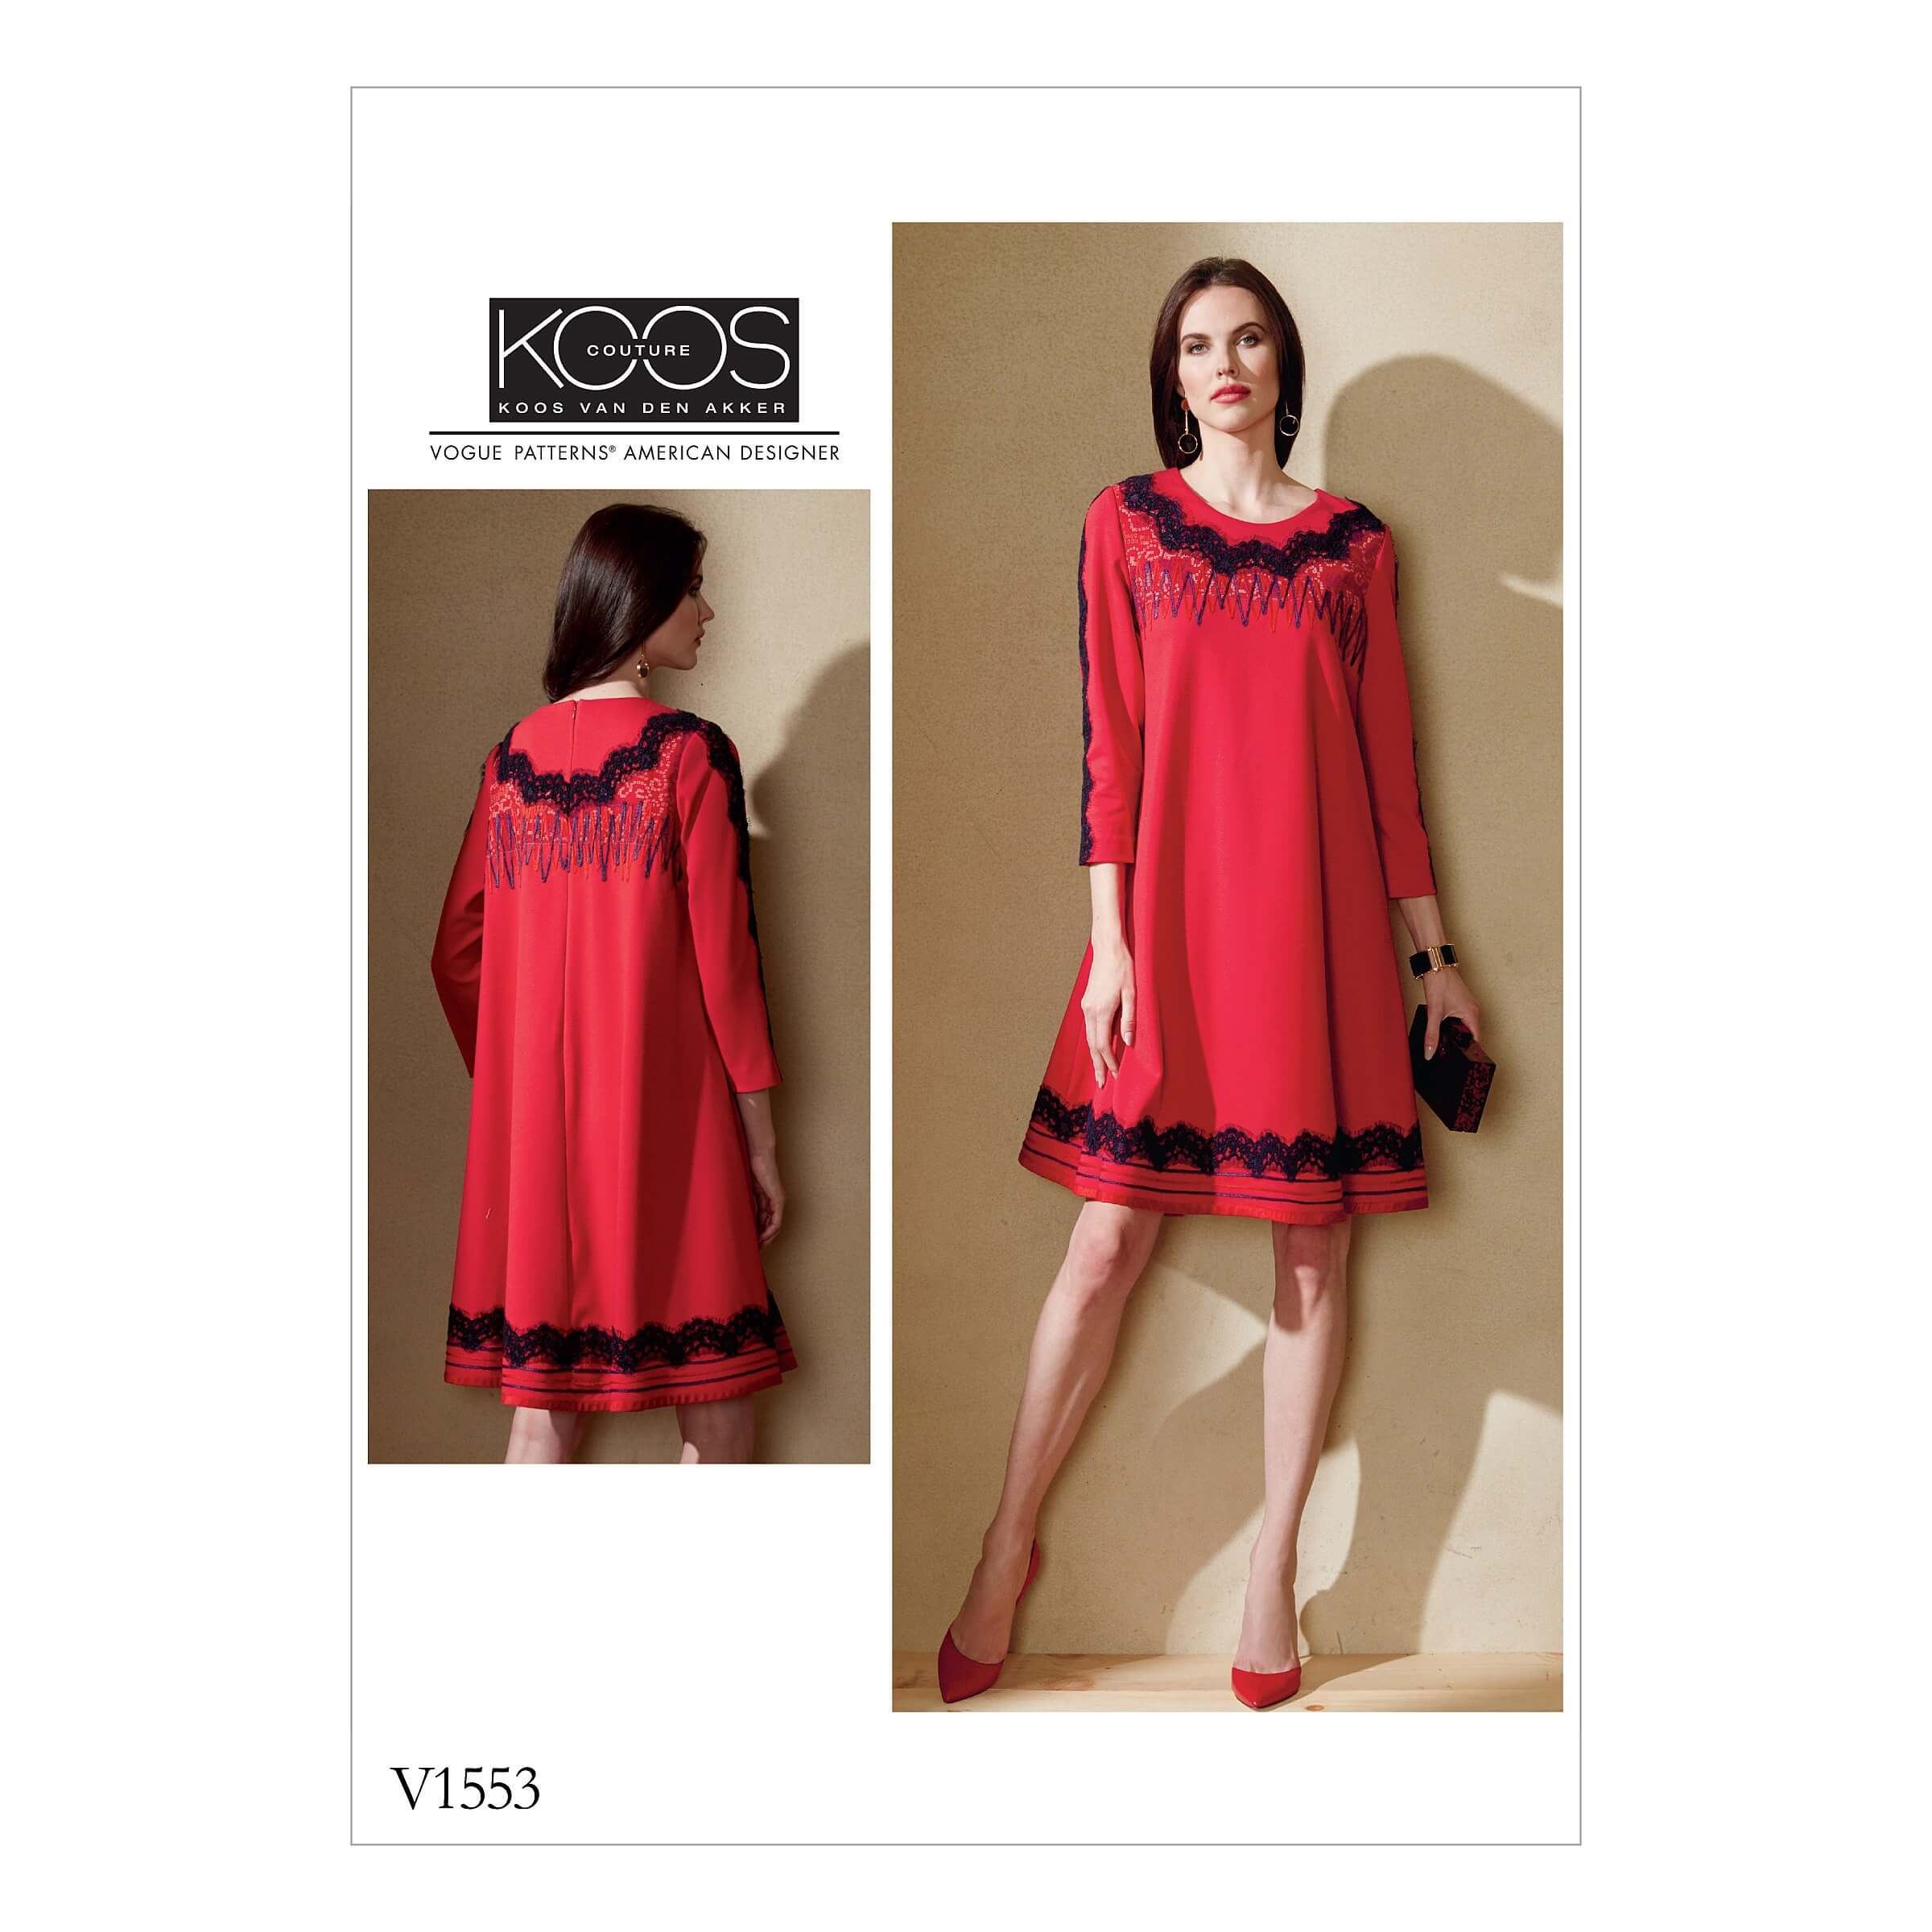 Vogue Sewing Pattern V1553 Women's Swing Dress with Decorative Trims